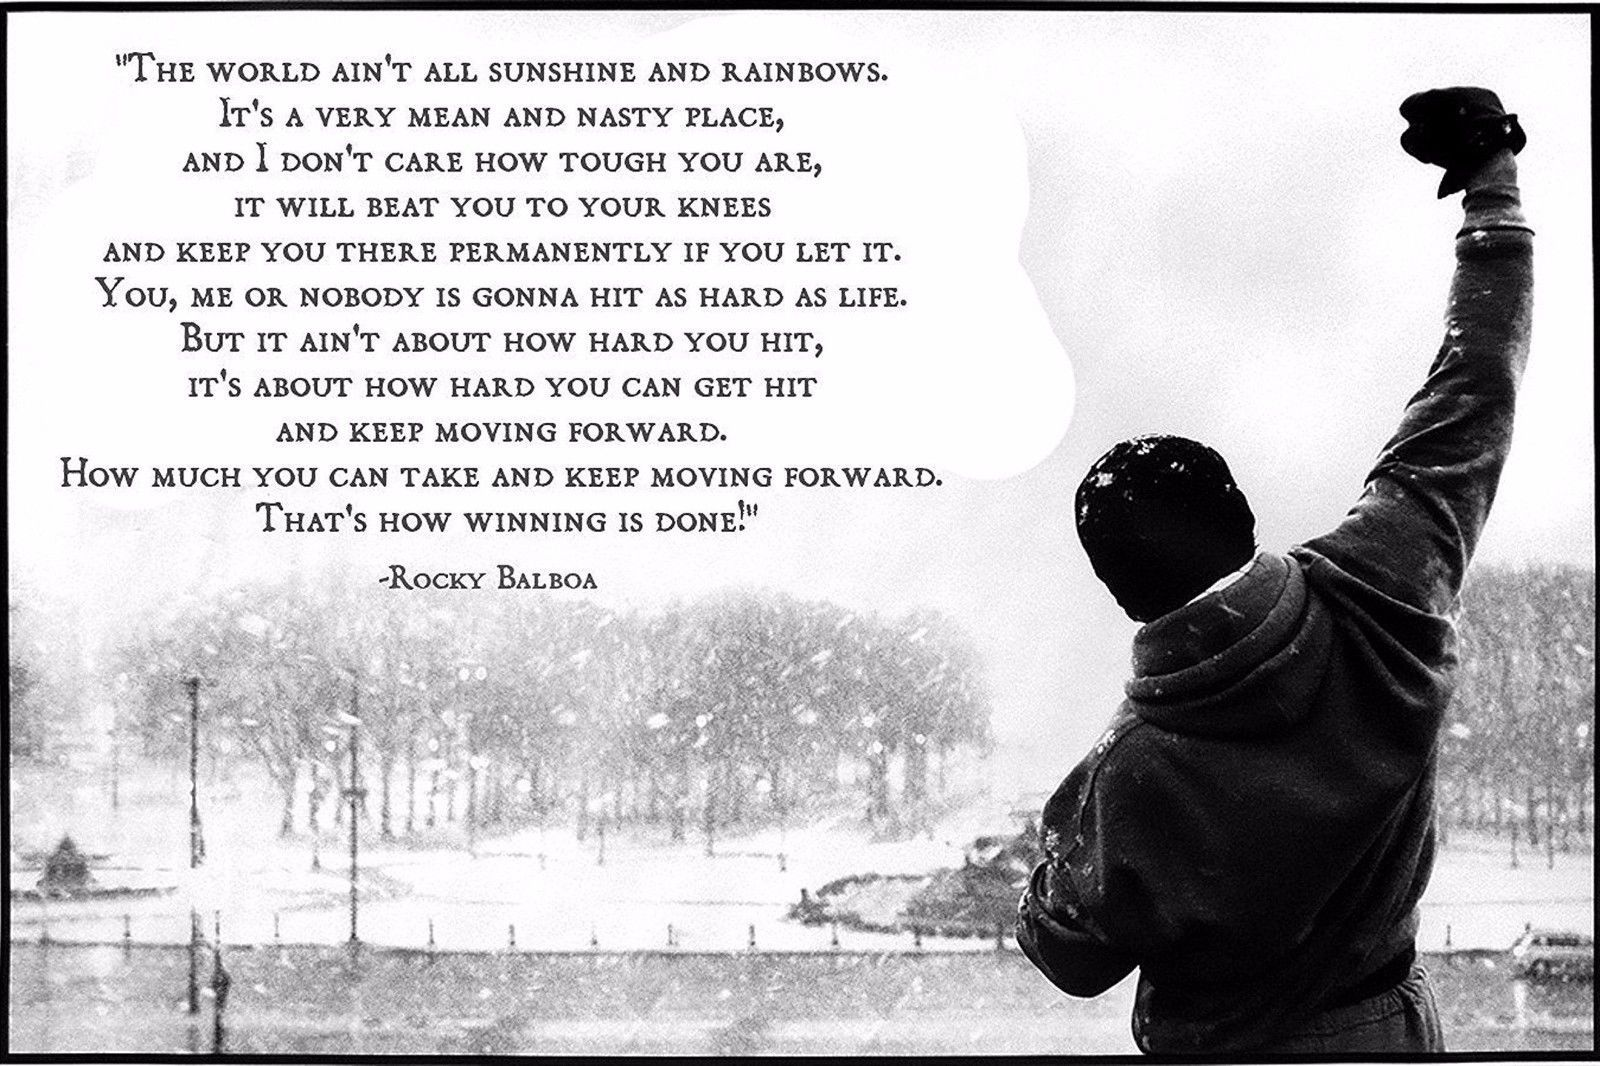 15 rocky balboa quote poster 24inx18in36inx24in print